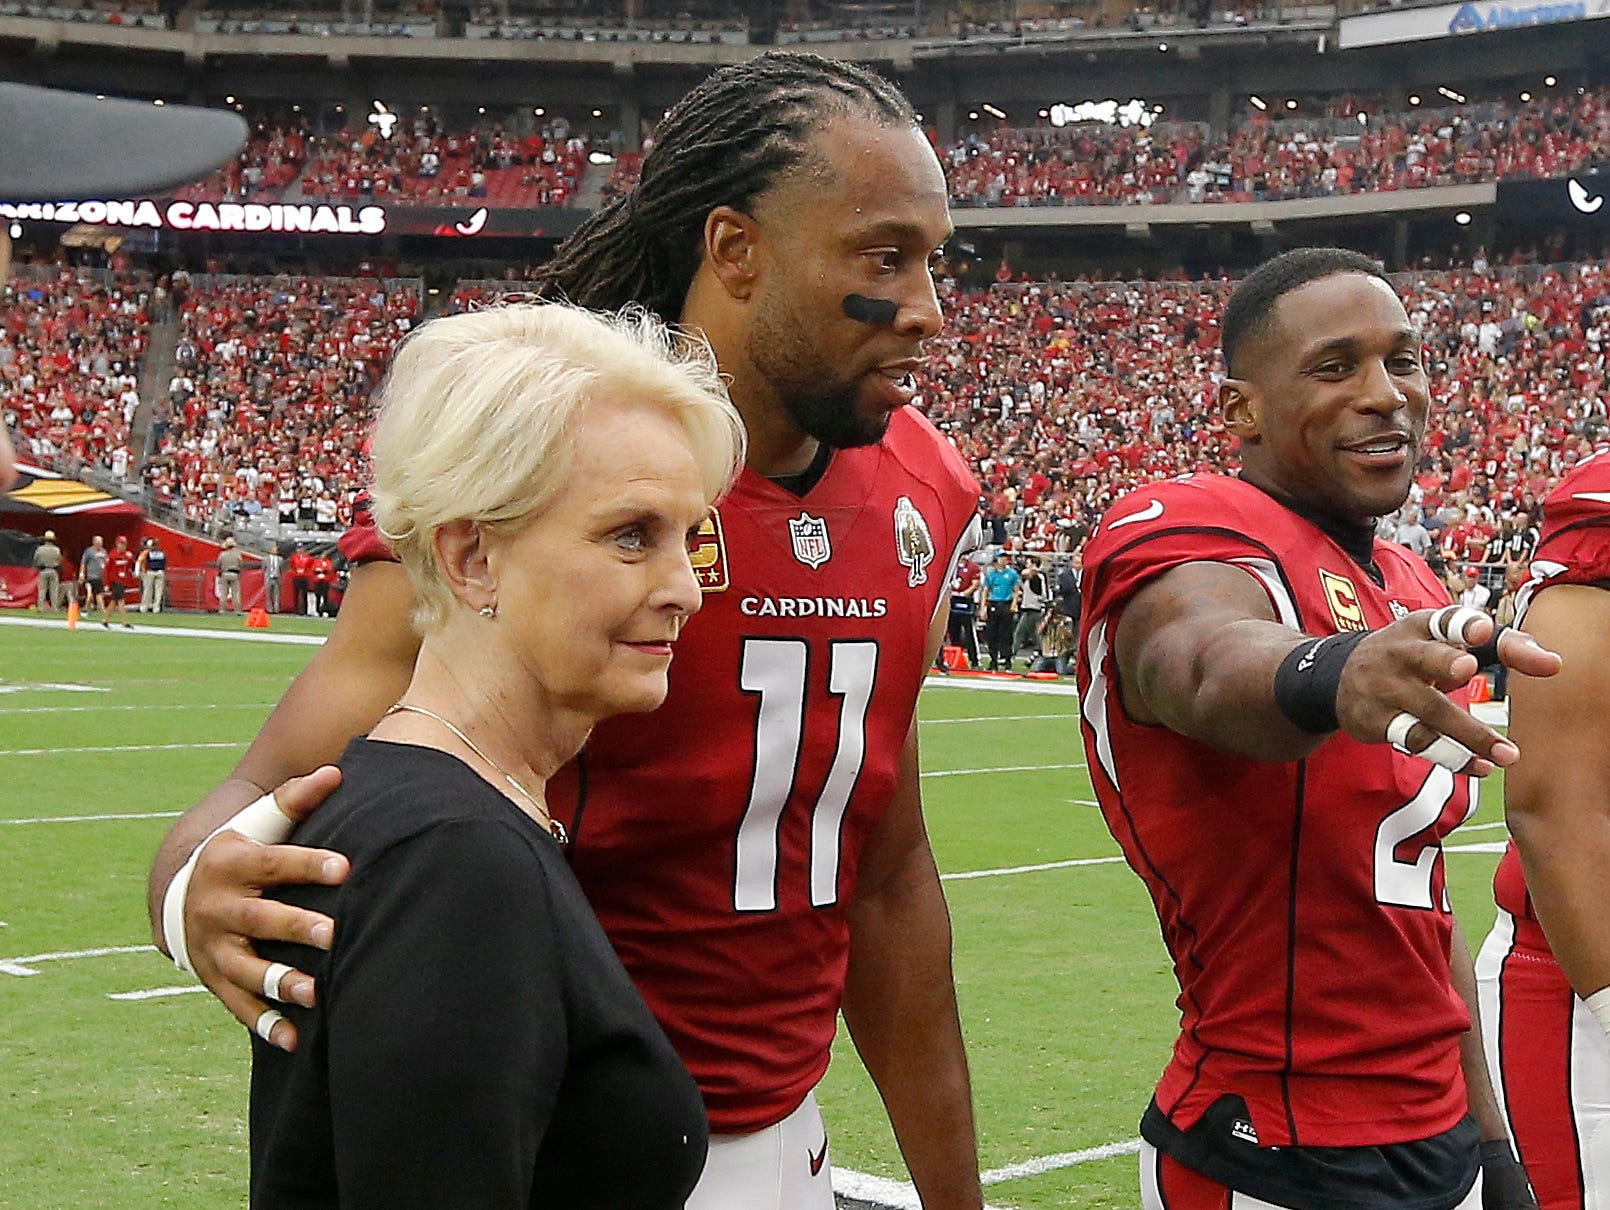 Cindy McCain, wife of the late U.S. Sen. John McCain, R-Ariz., stands with Arizona Cardinals wide receiver Larry Fitzgerald (11) as an honorary team captain during the coin toss prior to an NFL football game against the Washington Redskins, Sept. 9, 2018, in Glendale, Ariz.